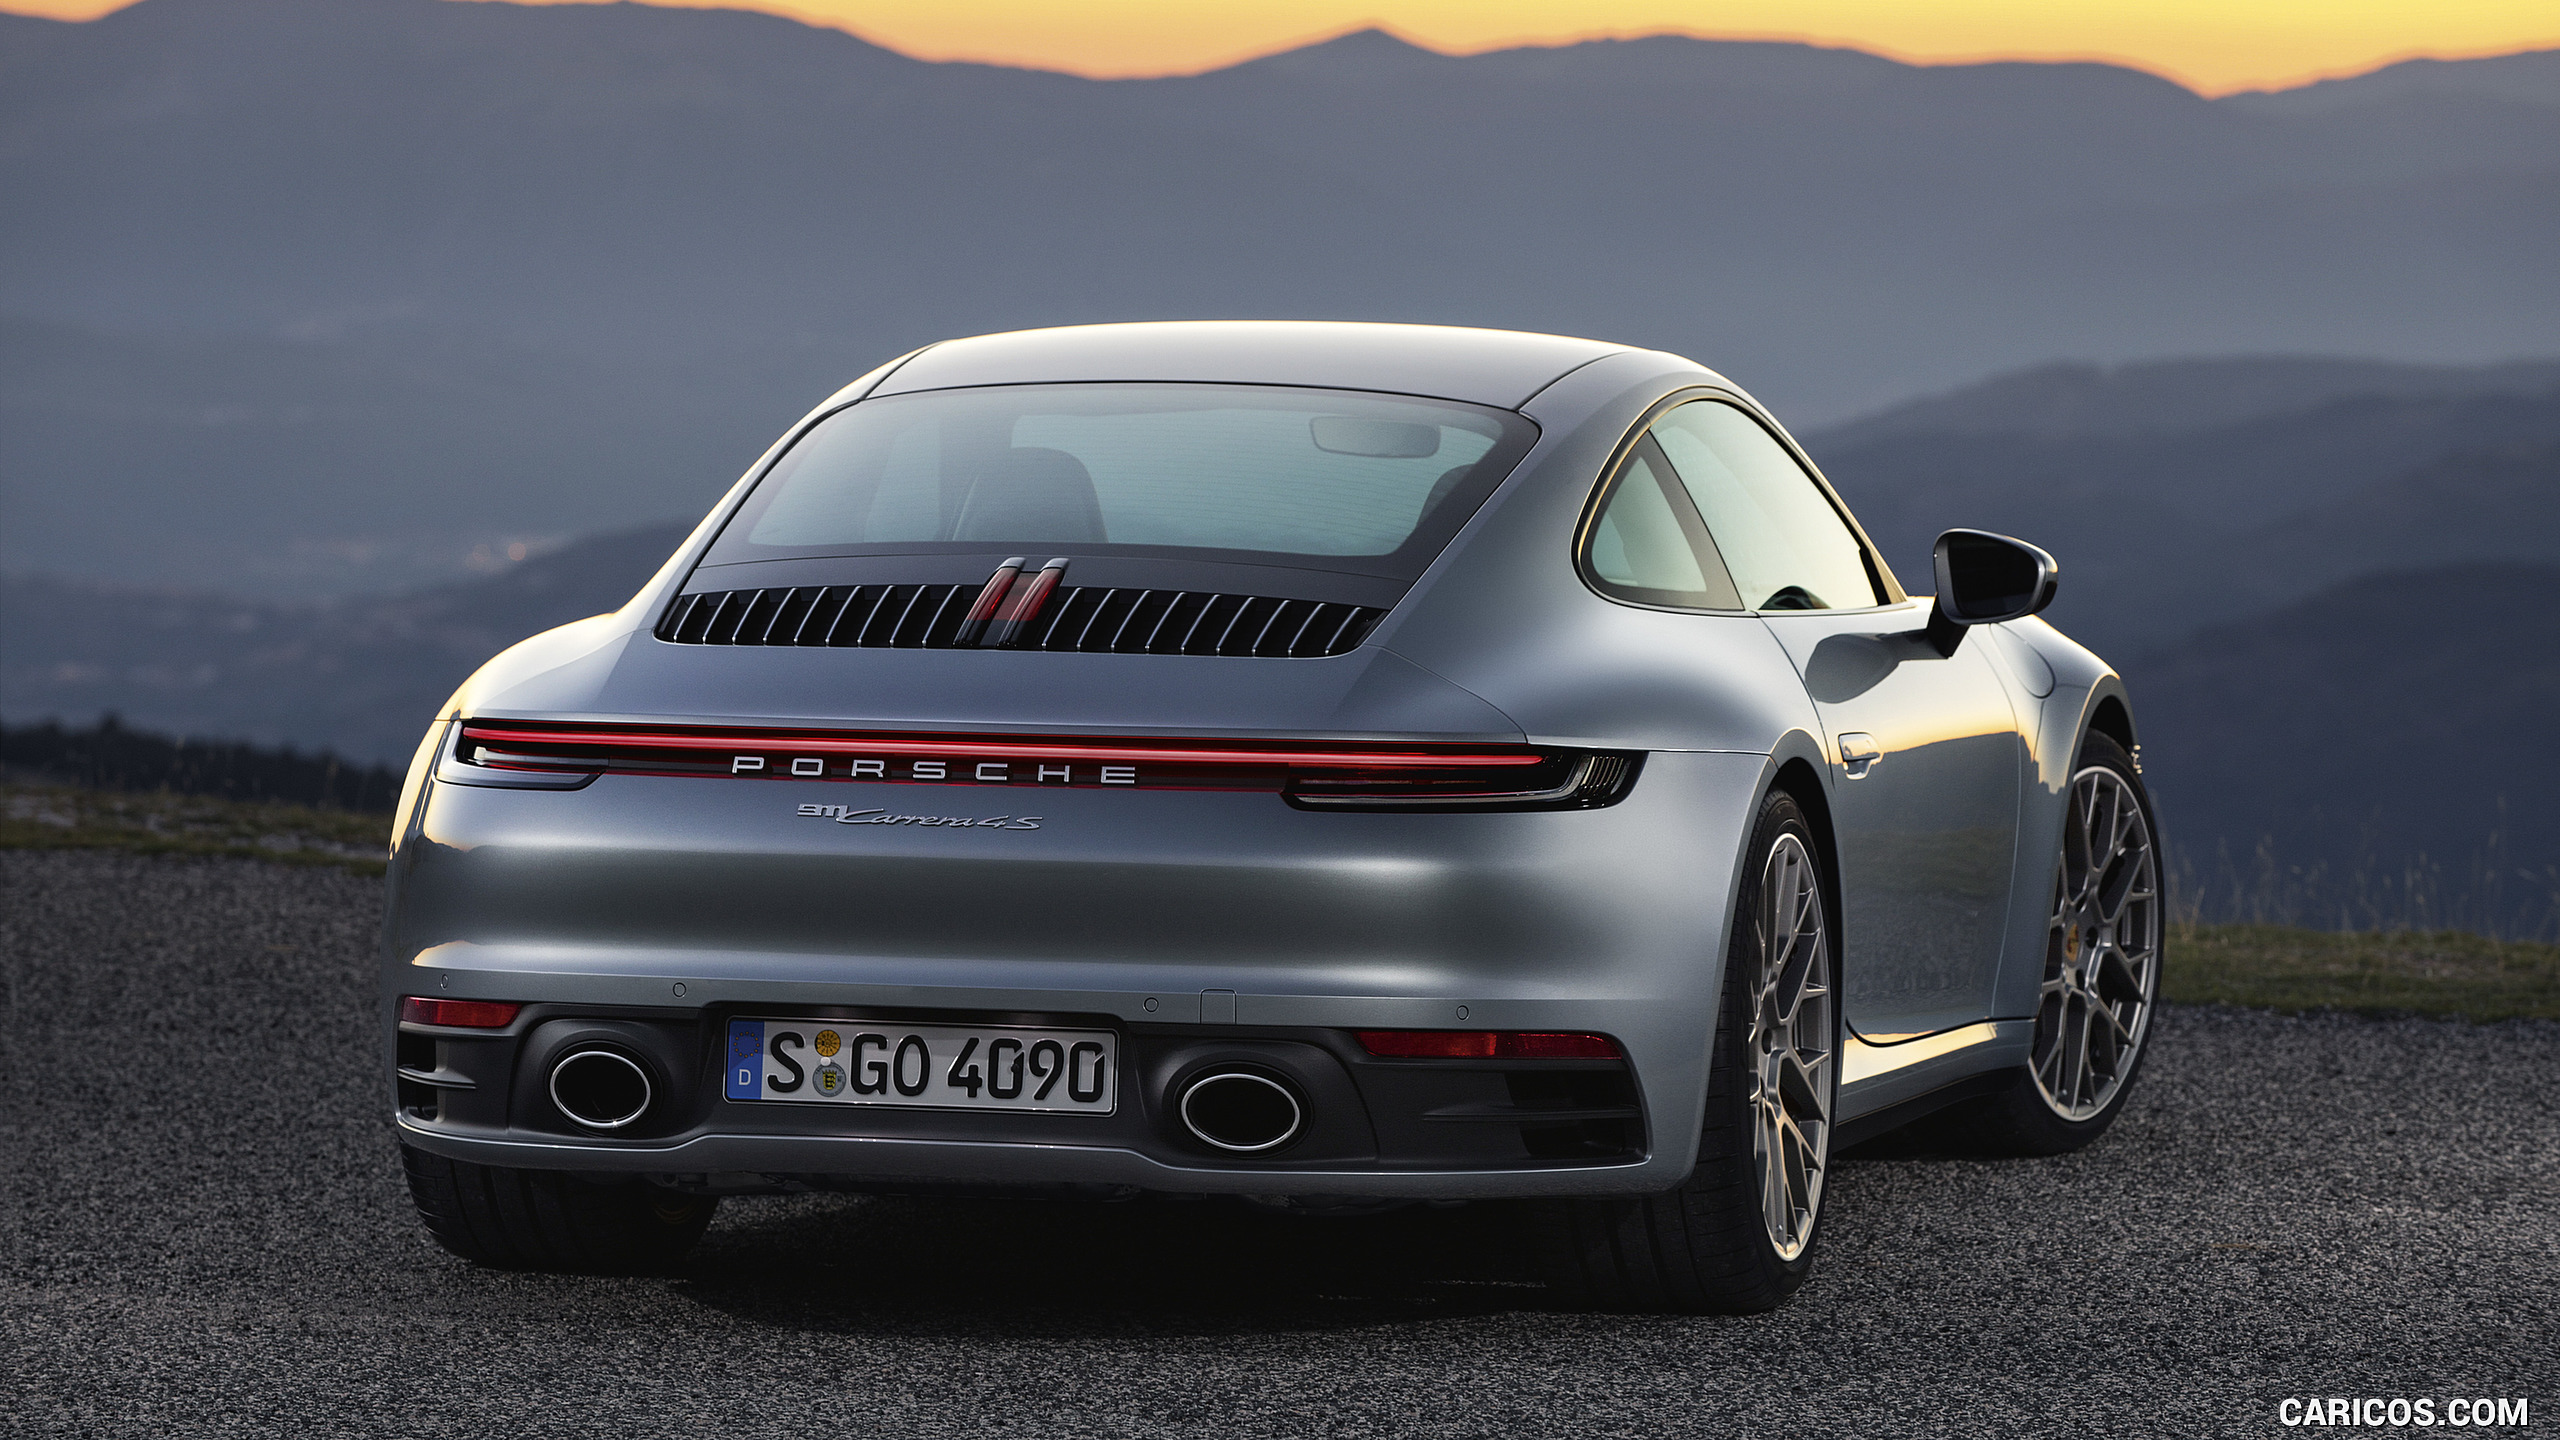 49 New 2020 Porsche 911 Carrera Images